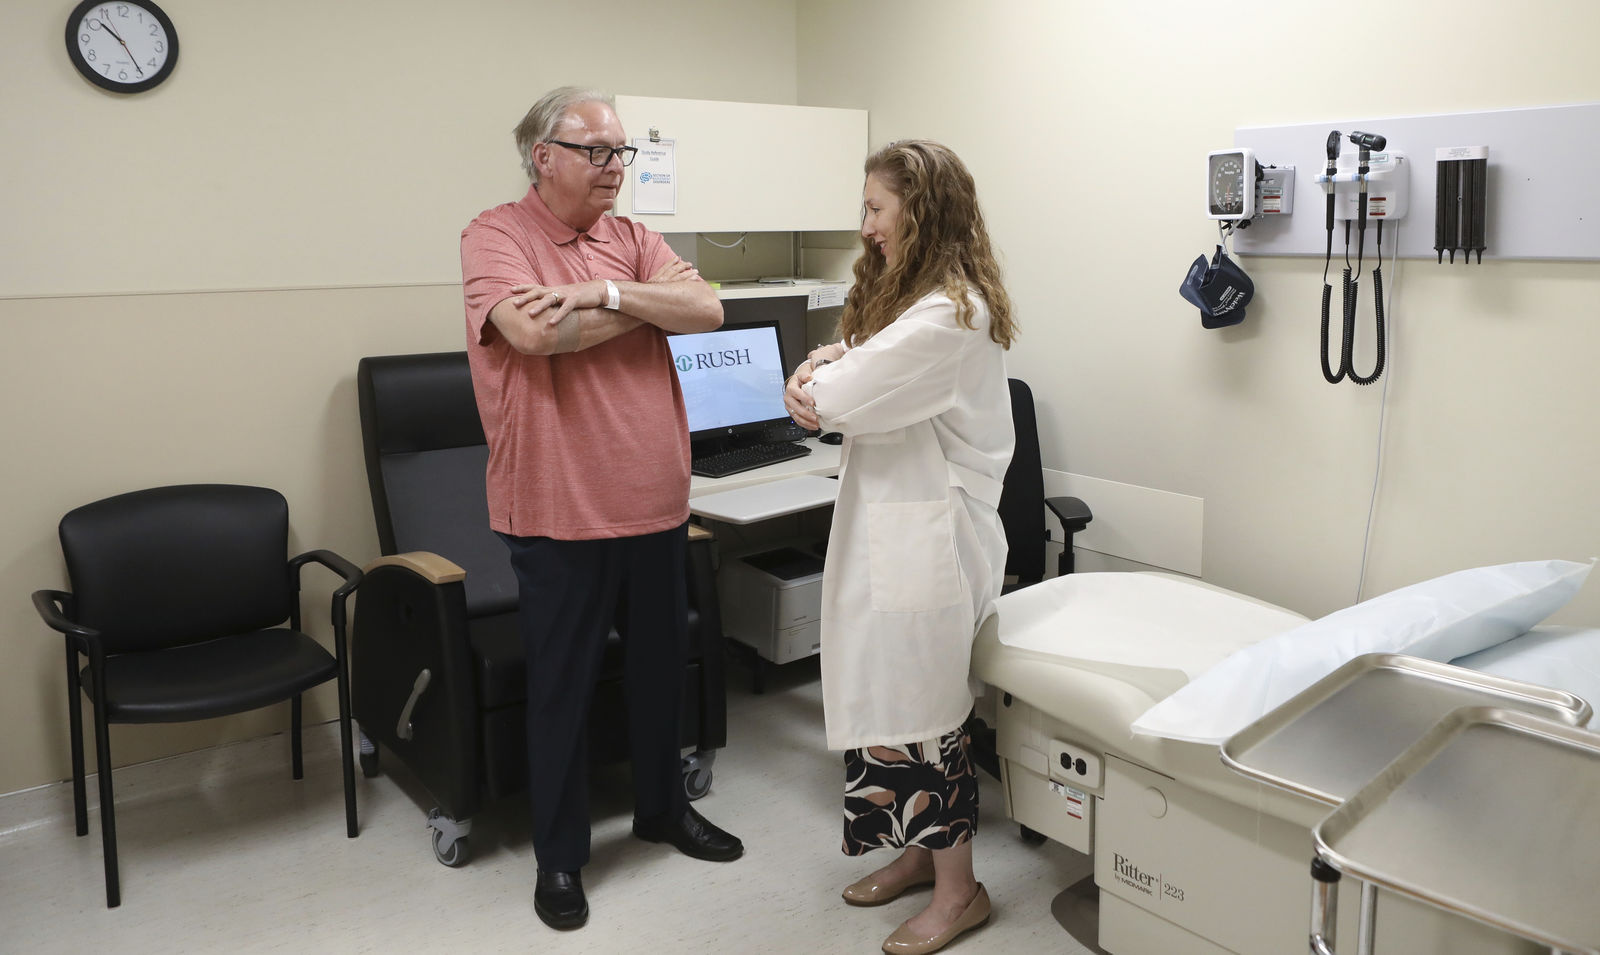 In this July 9, 2019 photo, Dr. Jori Fleisher, neurologist, examines Thomas Doyle, 66, at the Rush University Medical Center in Chicago. Doyle, 66, hopes blood tests may someday replace the invasive diagnostic testing he endured to be diagnosed 4.5 years ago with Lewy body dementia. (AP Photo/Teresa Crawford)